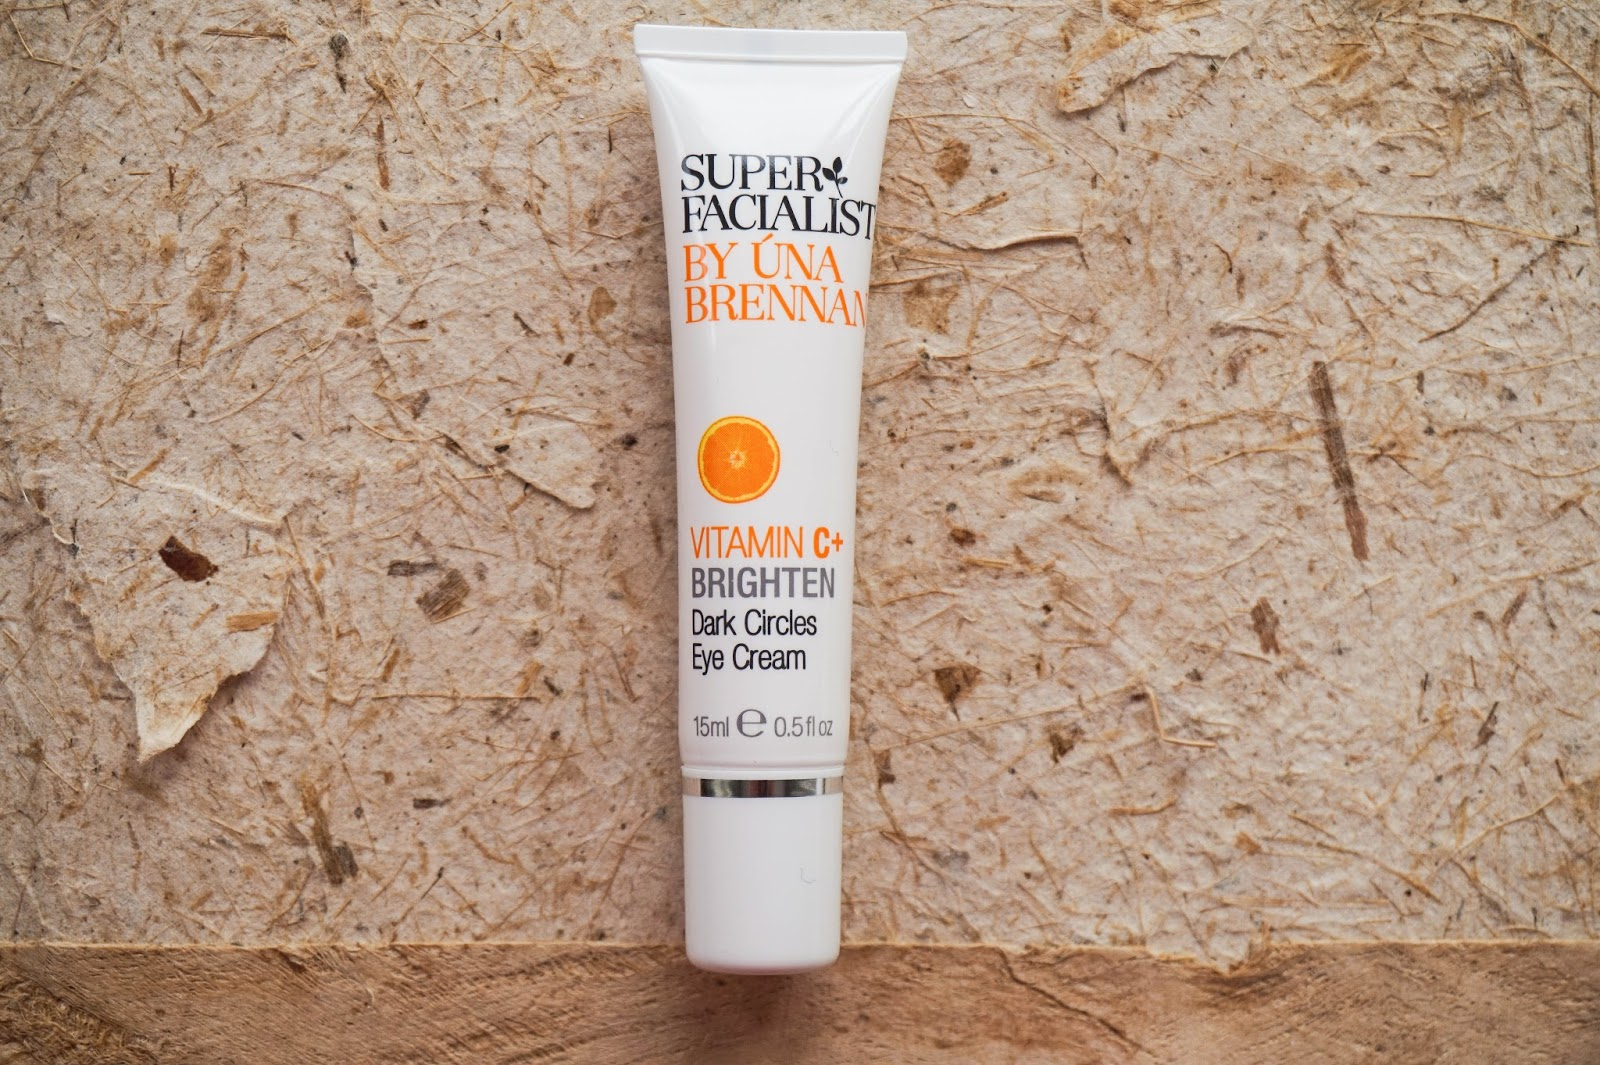 Super Facialist by Una Brennan, Rose Hydrate Intense Moisture Mask, Vitamin C+ Brighten Dark Circles Eye Cream